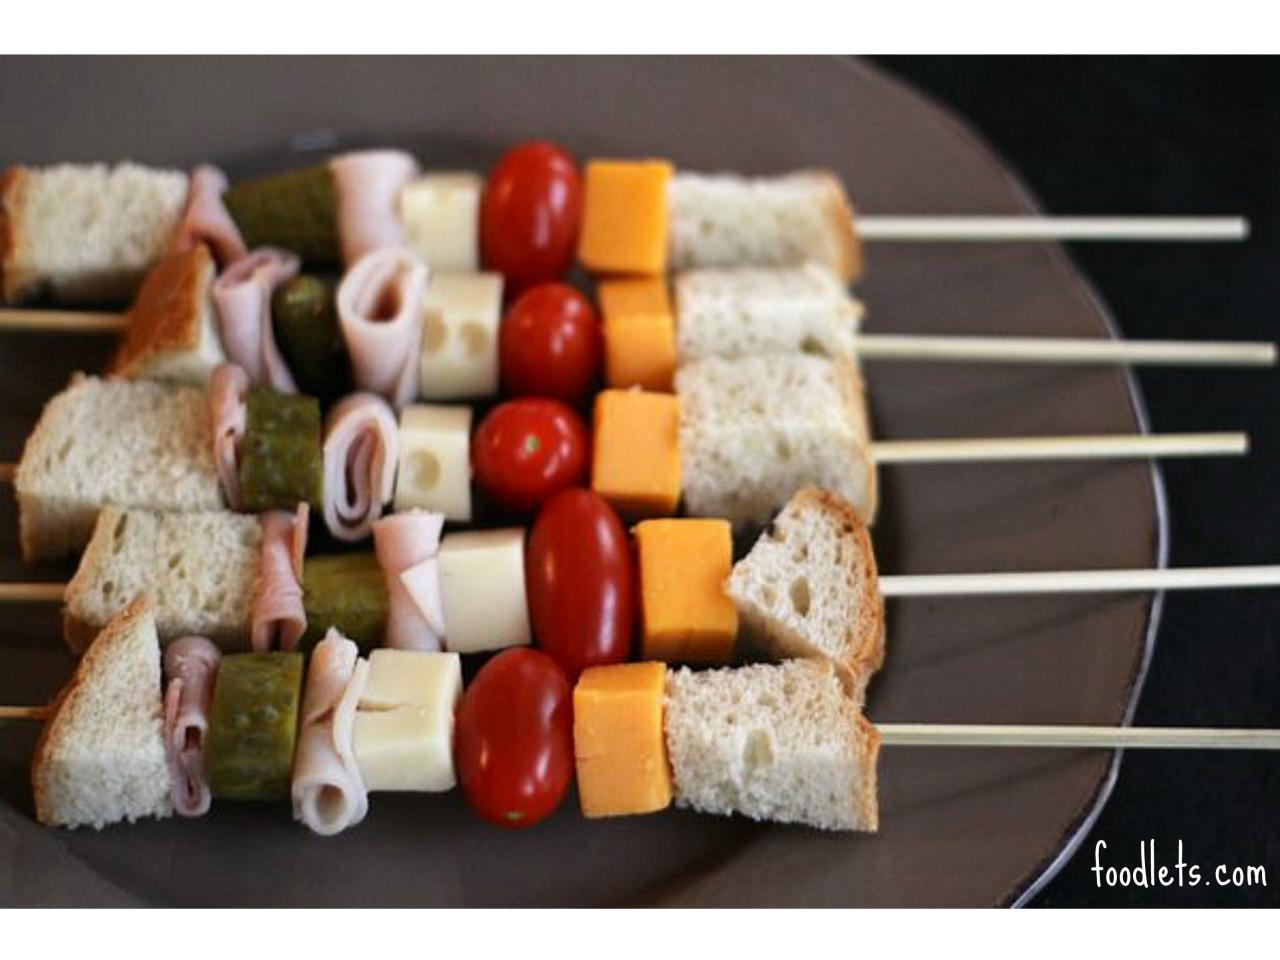 Skewer mania 15 summer recipes for food on a stick fn dish skewer mania 15 summer recipes for food on a stick fn dish behind the scenes food trends and best recipes food network food network forumfinder Choice Image